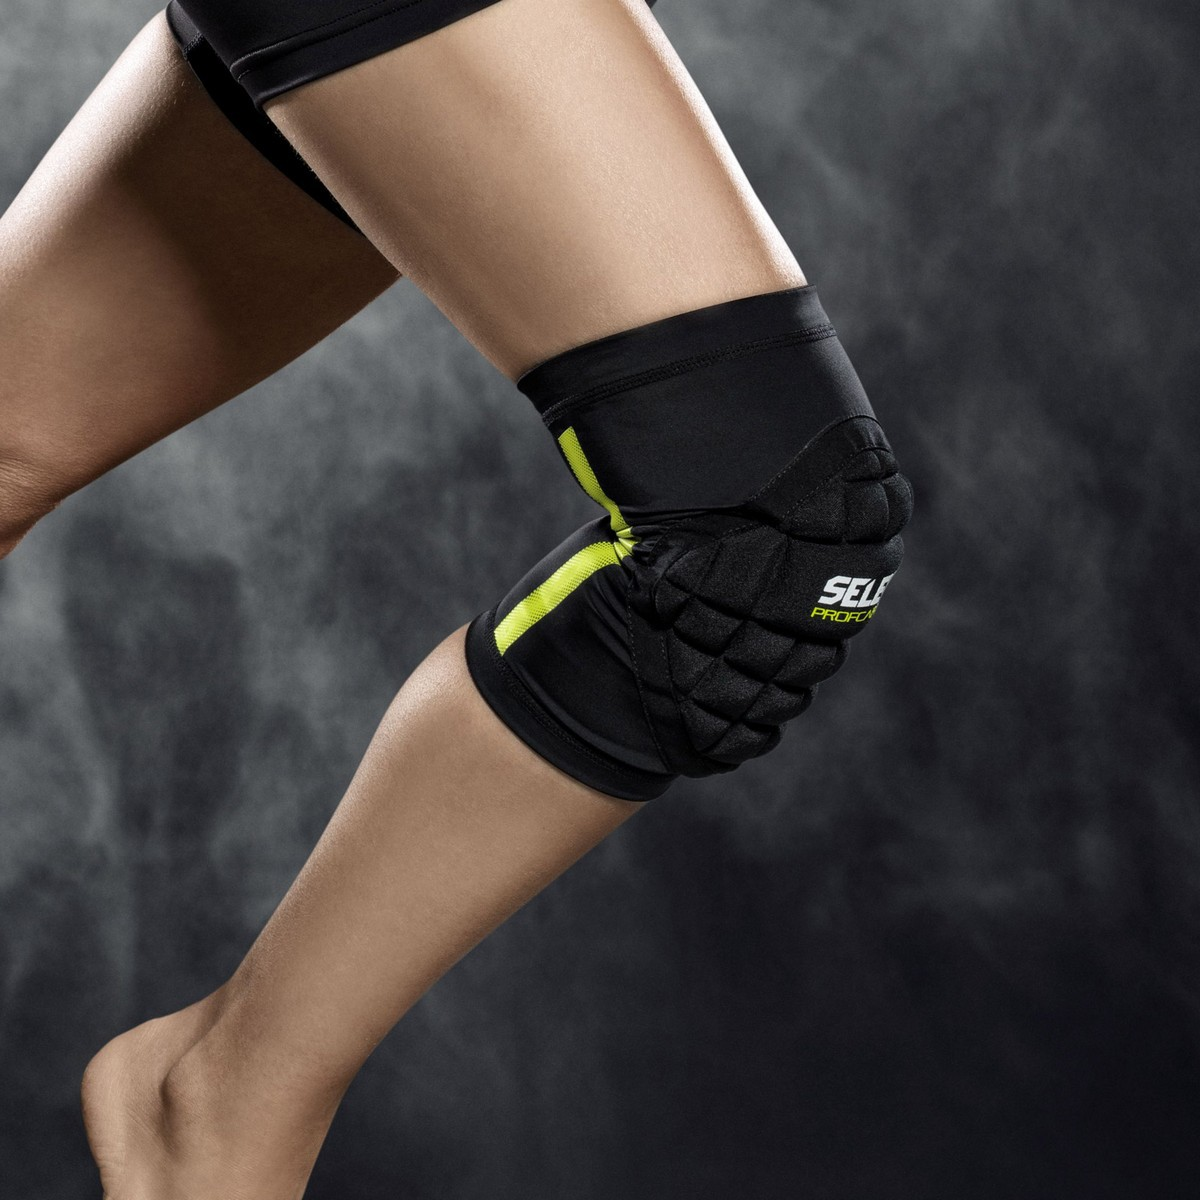 Compression knee support handball 6251W - Select